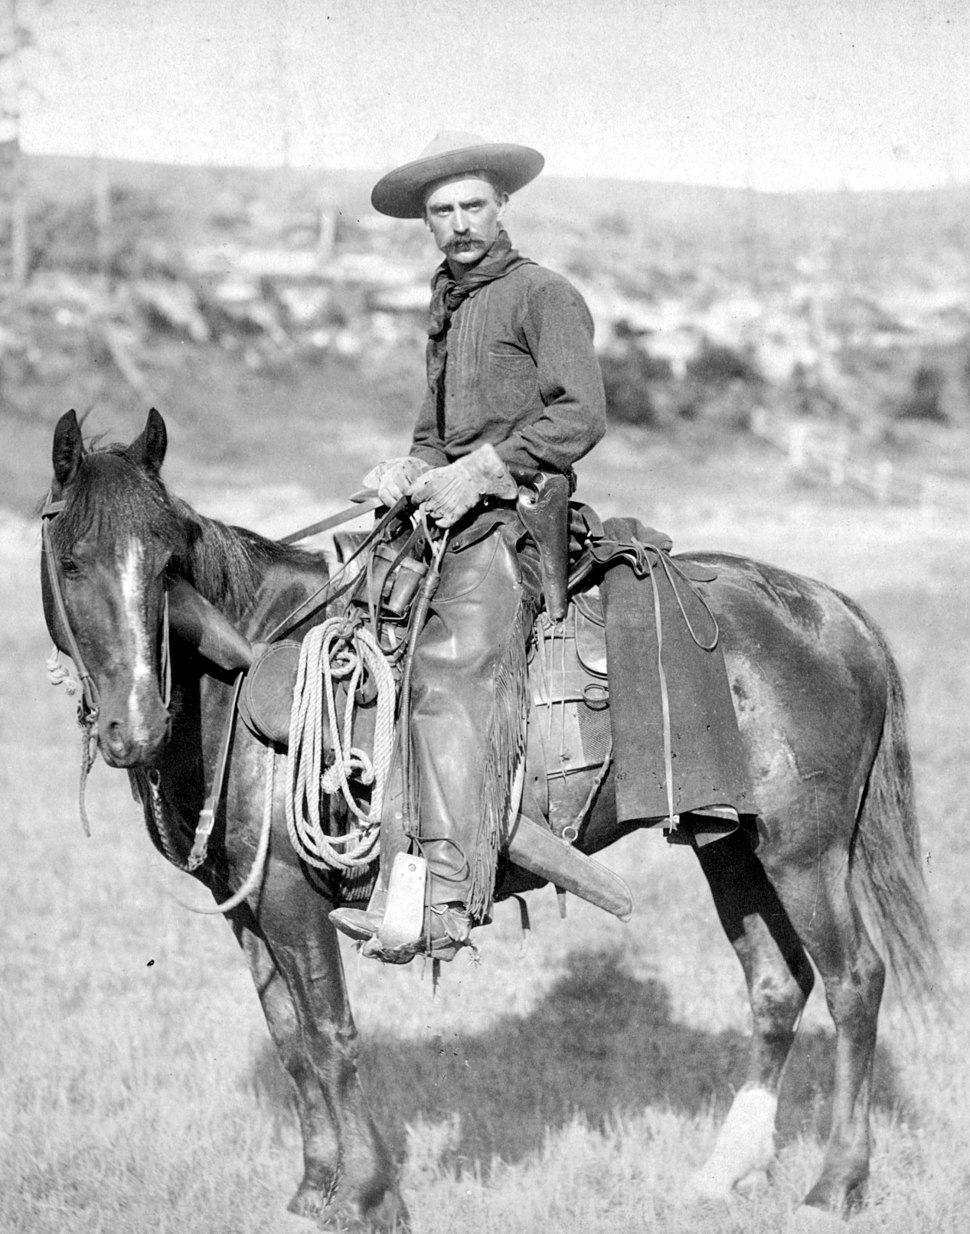 A black or white photograph of a cowboy posing on a horse with a lasso and rifle visible attached to the saddle